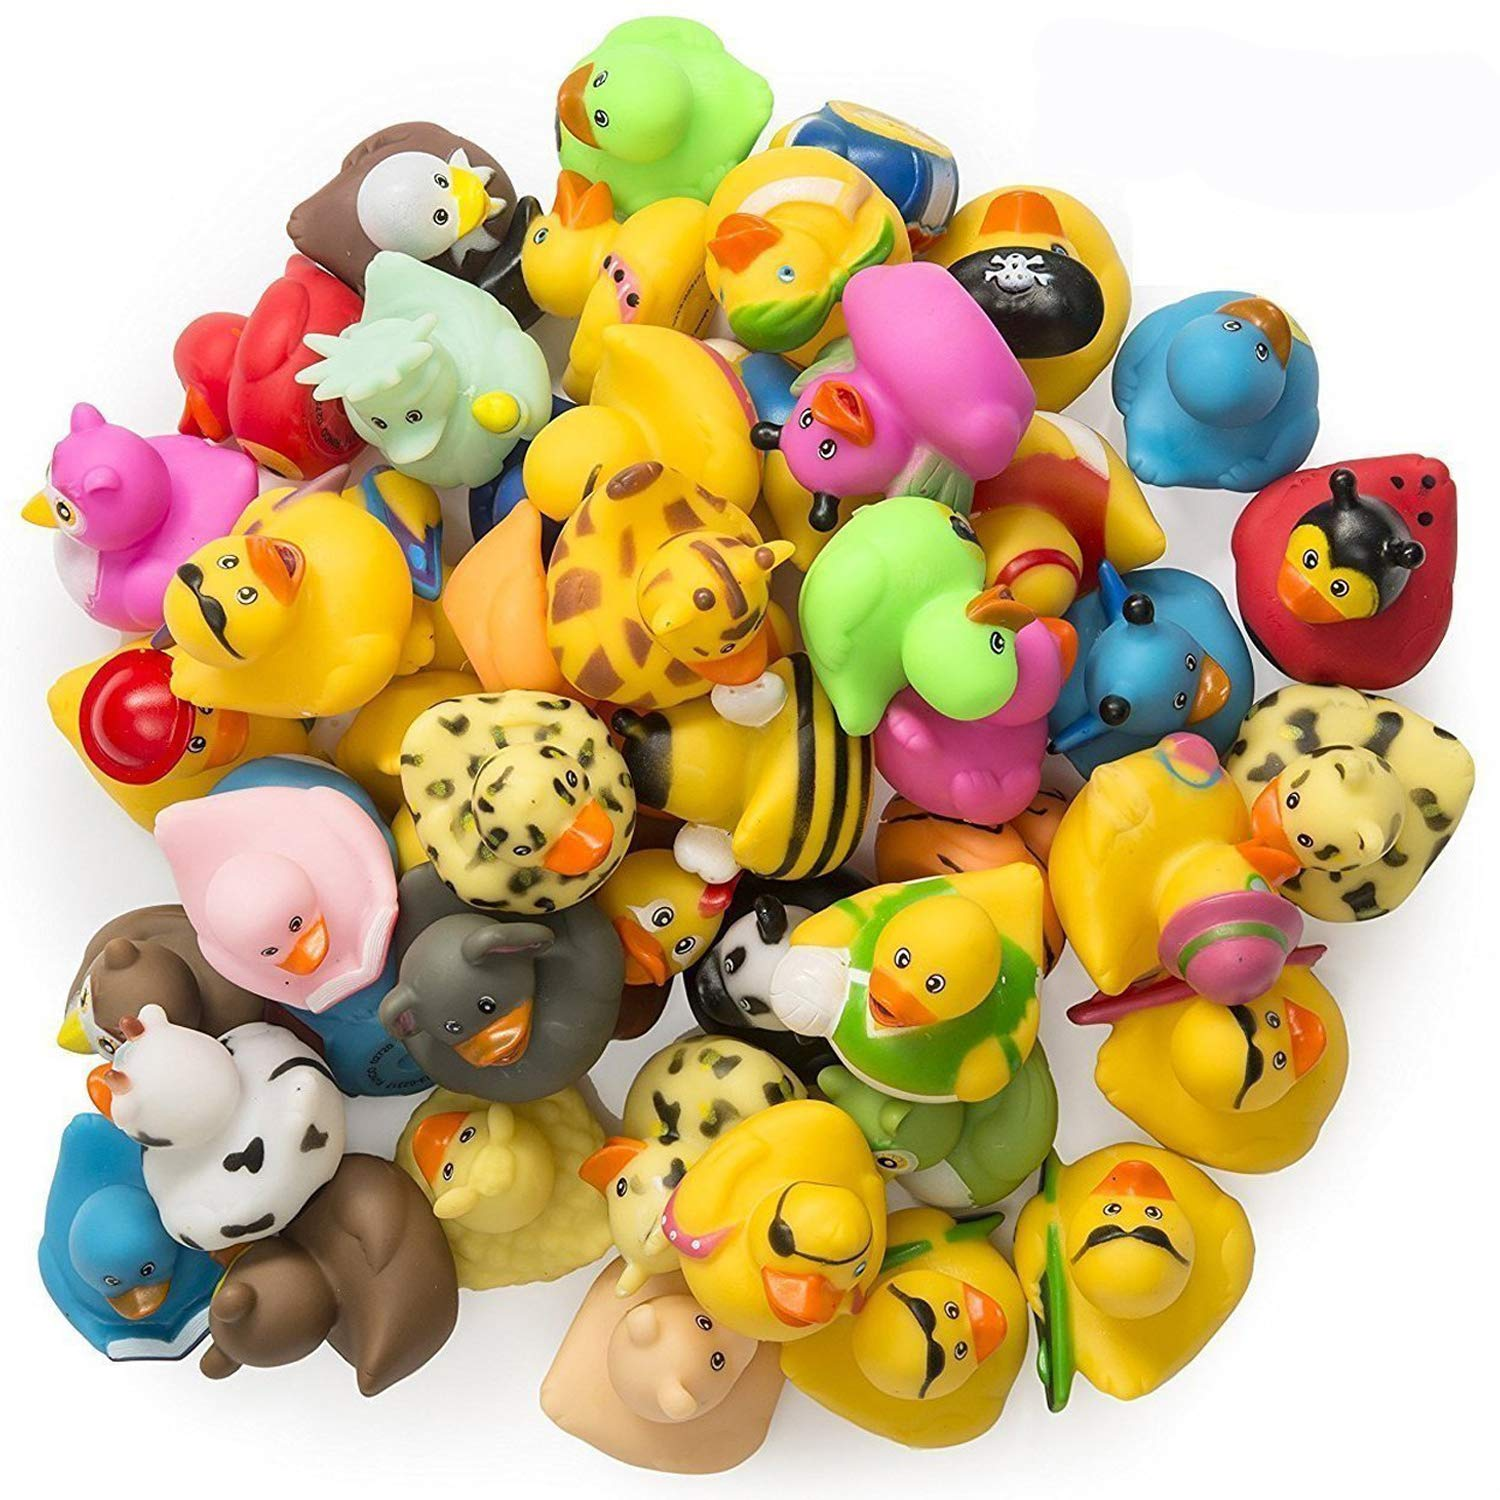 Kicko Rubber Ducks - 50 Assorted Pieces - 2 Inches - for Kids, Party Favors, Birthdays, Baby Showers, Baby Bath Toys, Bath Time, Easter Party Favors, ...